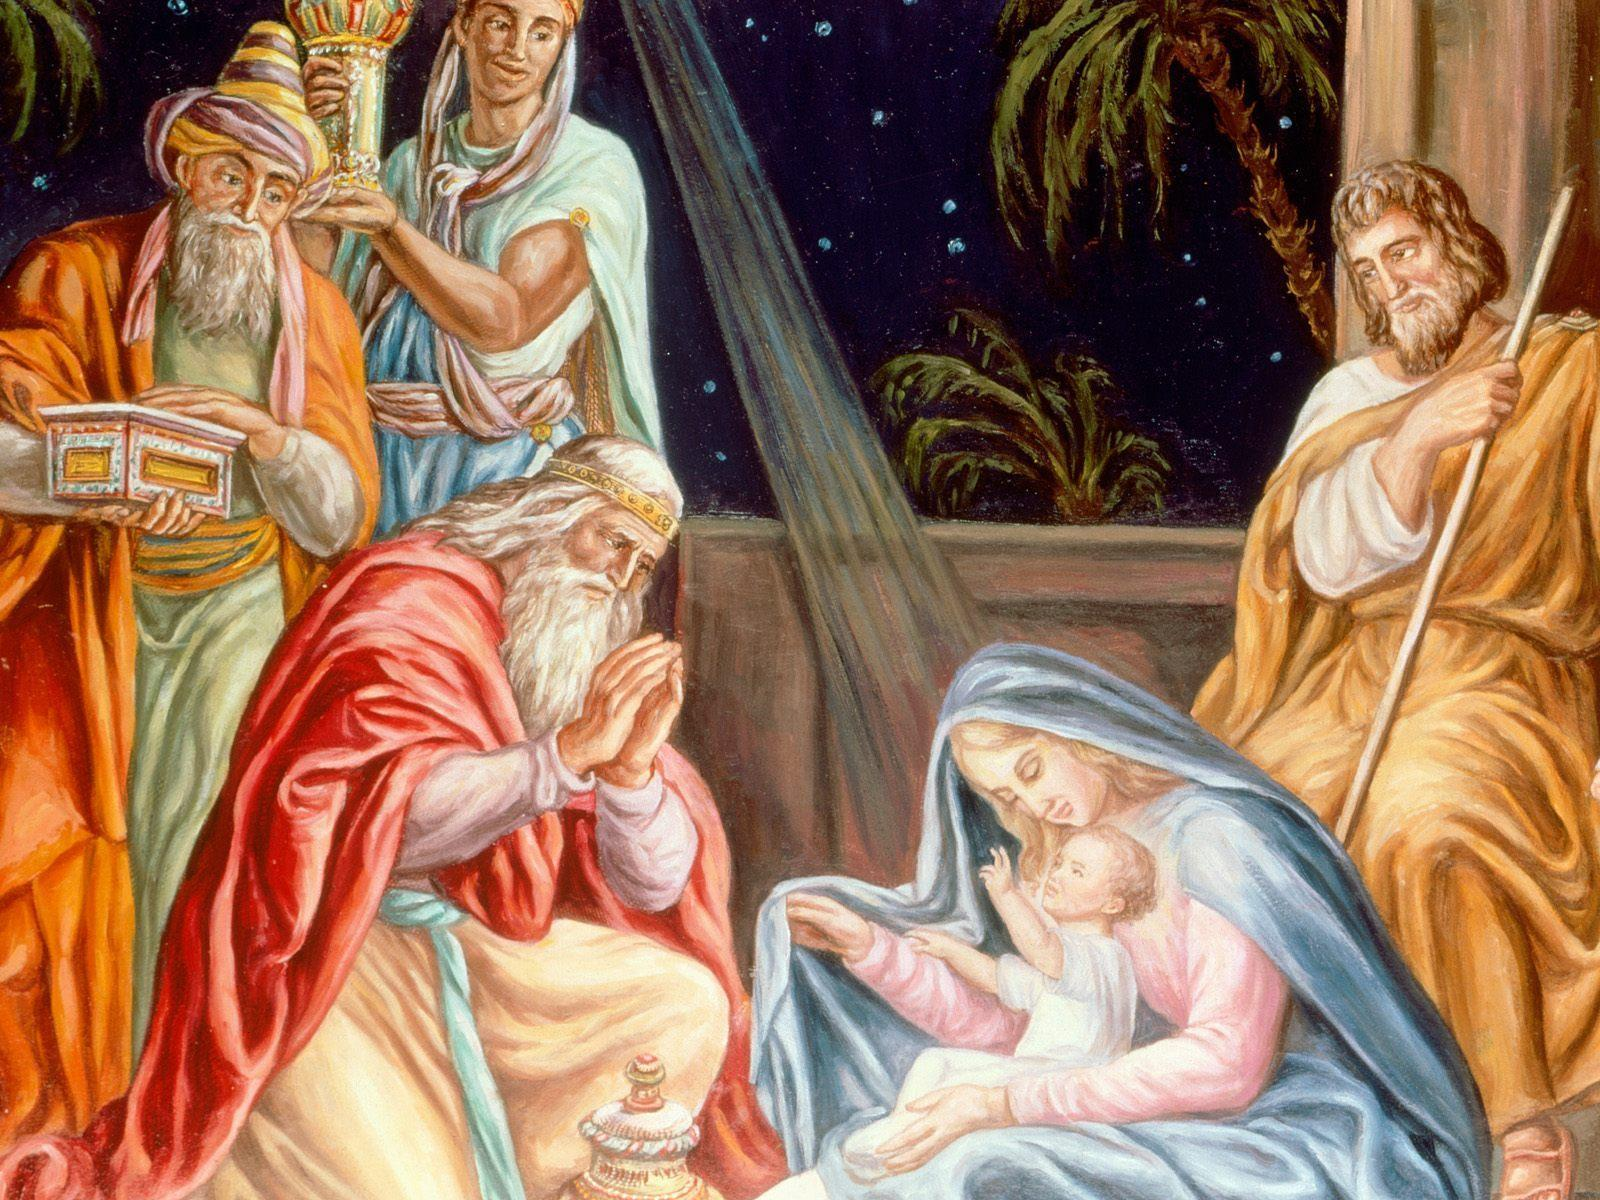 http://images4.fanpop.com/image/photos/16900000/Jesus-Christ-was-born-christmas-16924704-1600-1200.jpg